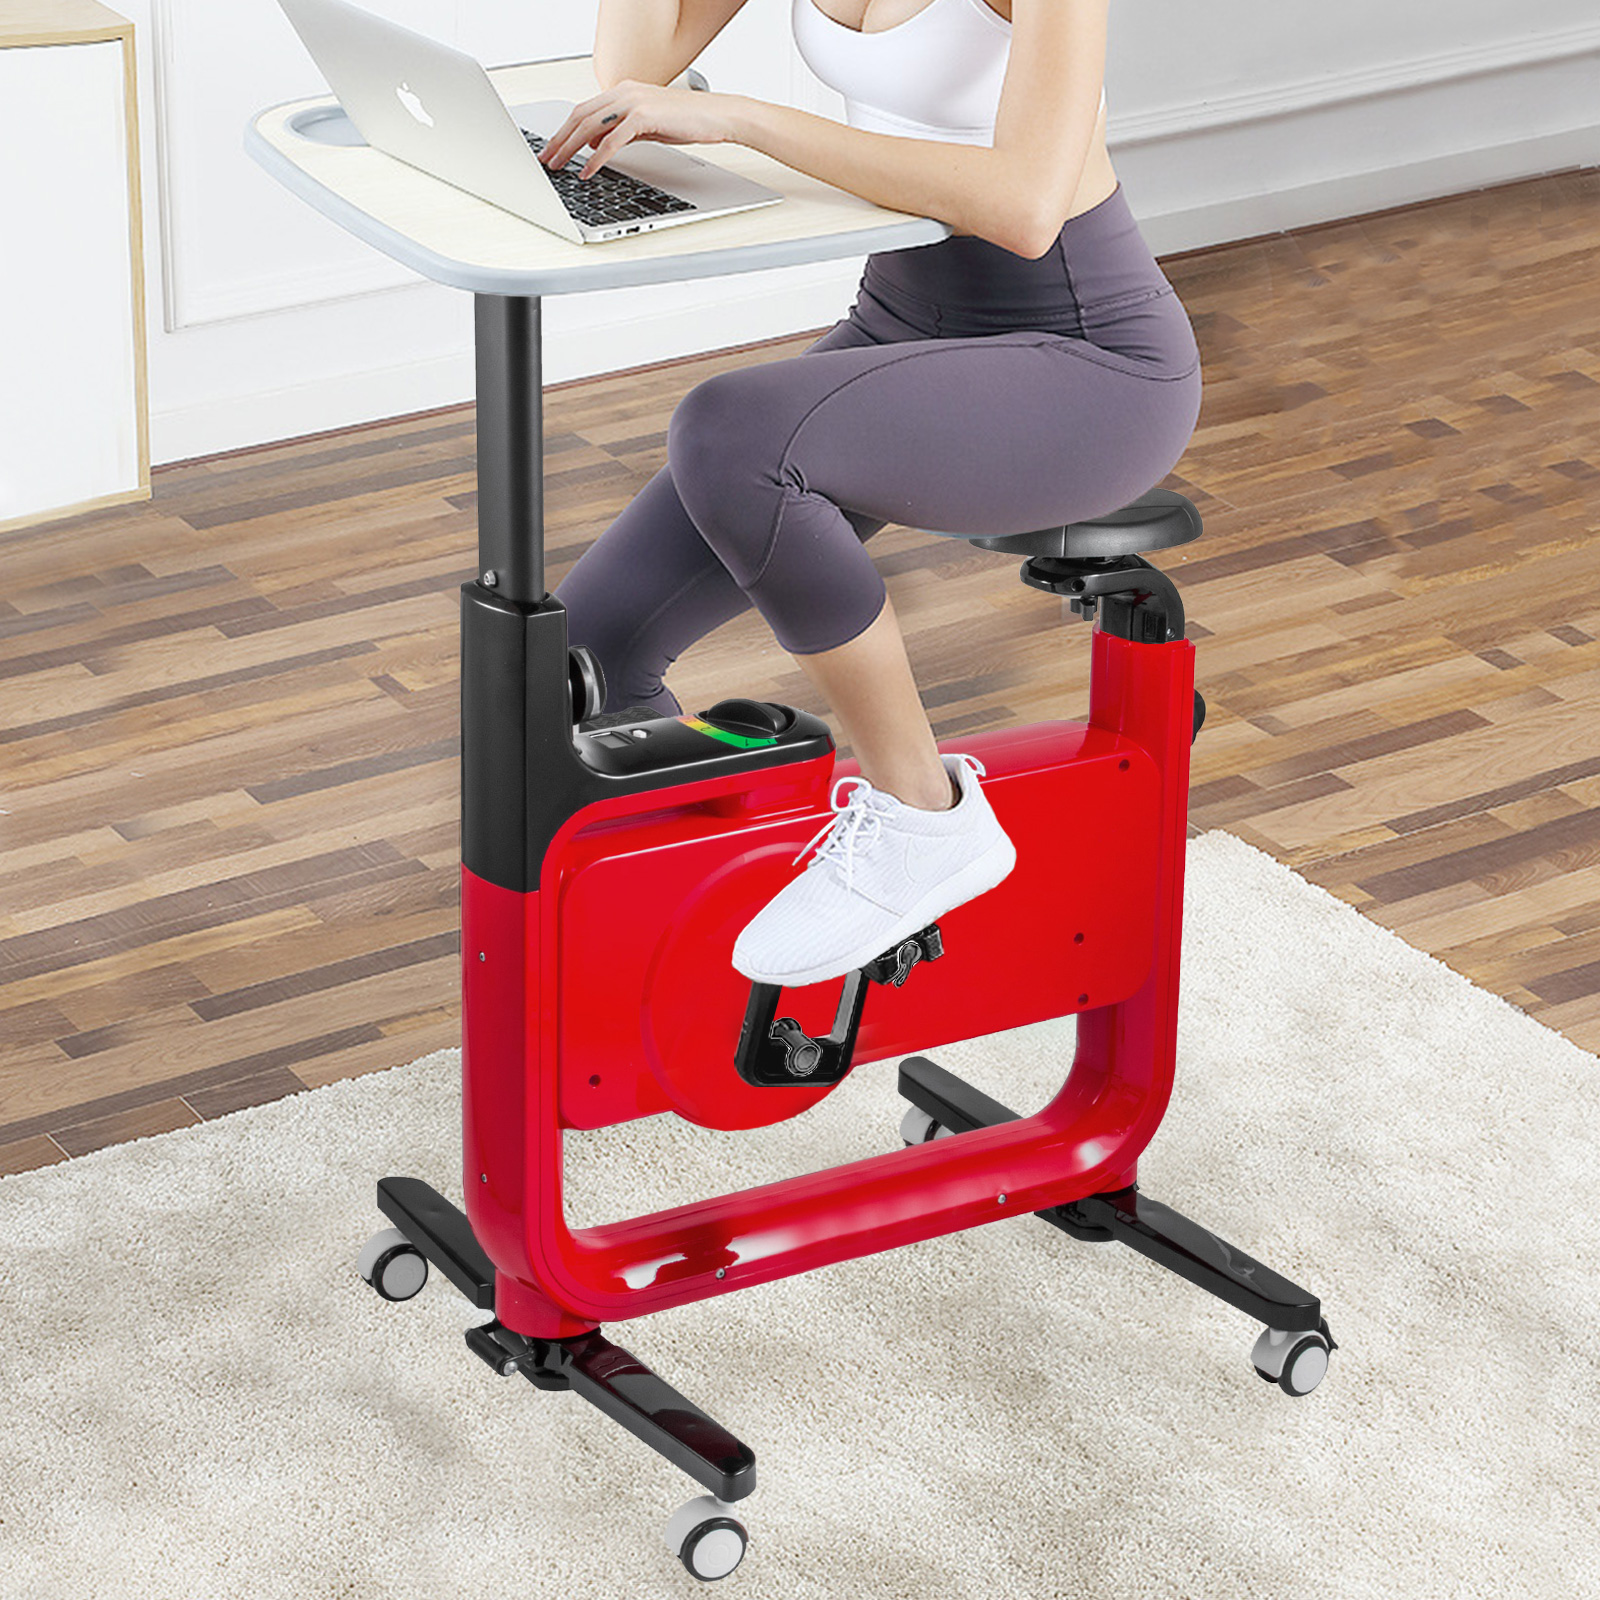 Multi-style-Magnetic-Exercise-Bike-office-Bicycle-under-Desk-Fitness-Cardio miniature 25